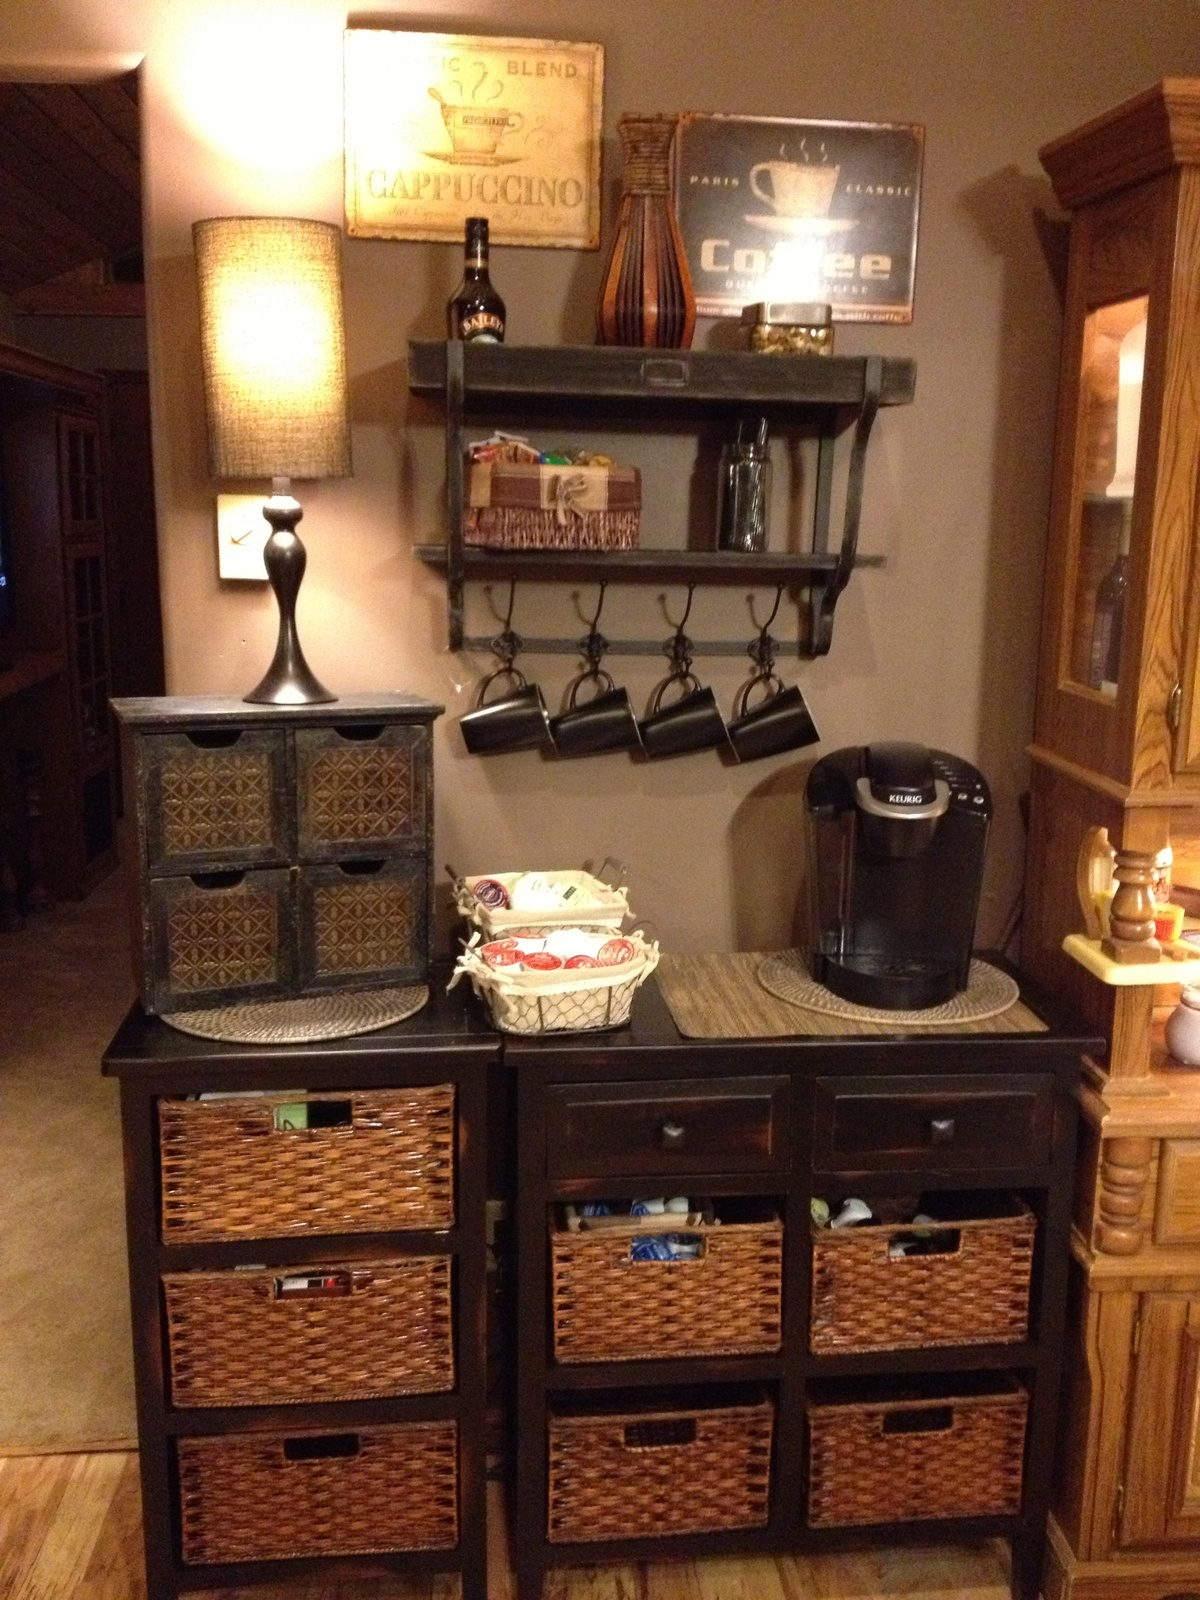 1000 images about coffee bars and brews on pinterest coffee stations home coffee bars and coffee. Black Bedroom Furniture Sets. Home Design Ideas